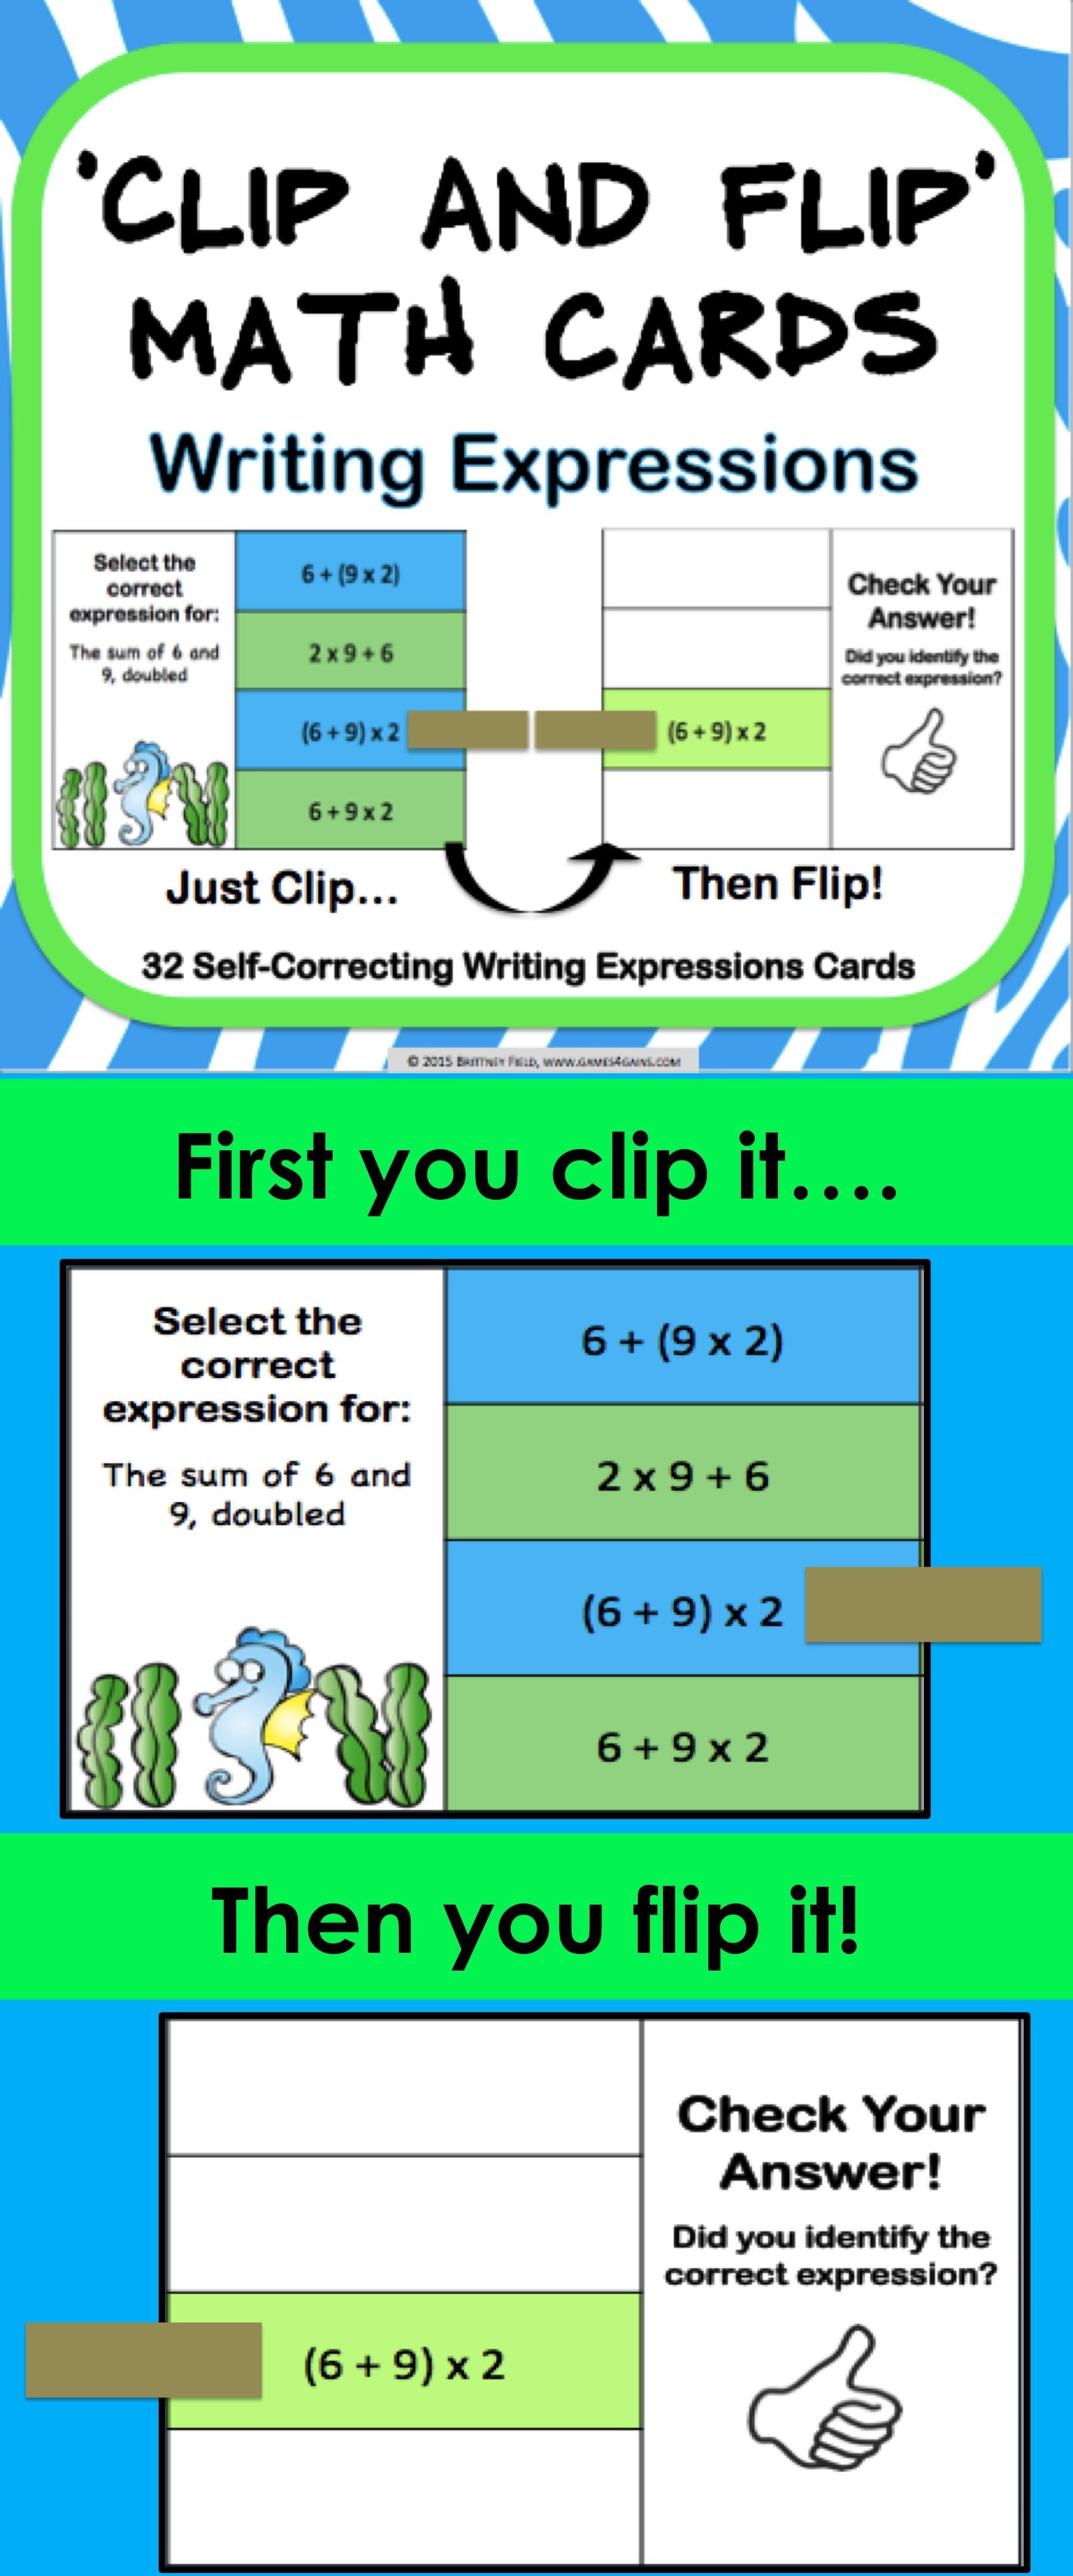 Order Of Operations Clip And Flip Cards Contains 32 Self Correcting Cards To Help Students Practice Wr Writing Expressions Order Of Operations Education Math